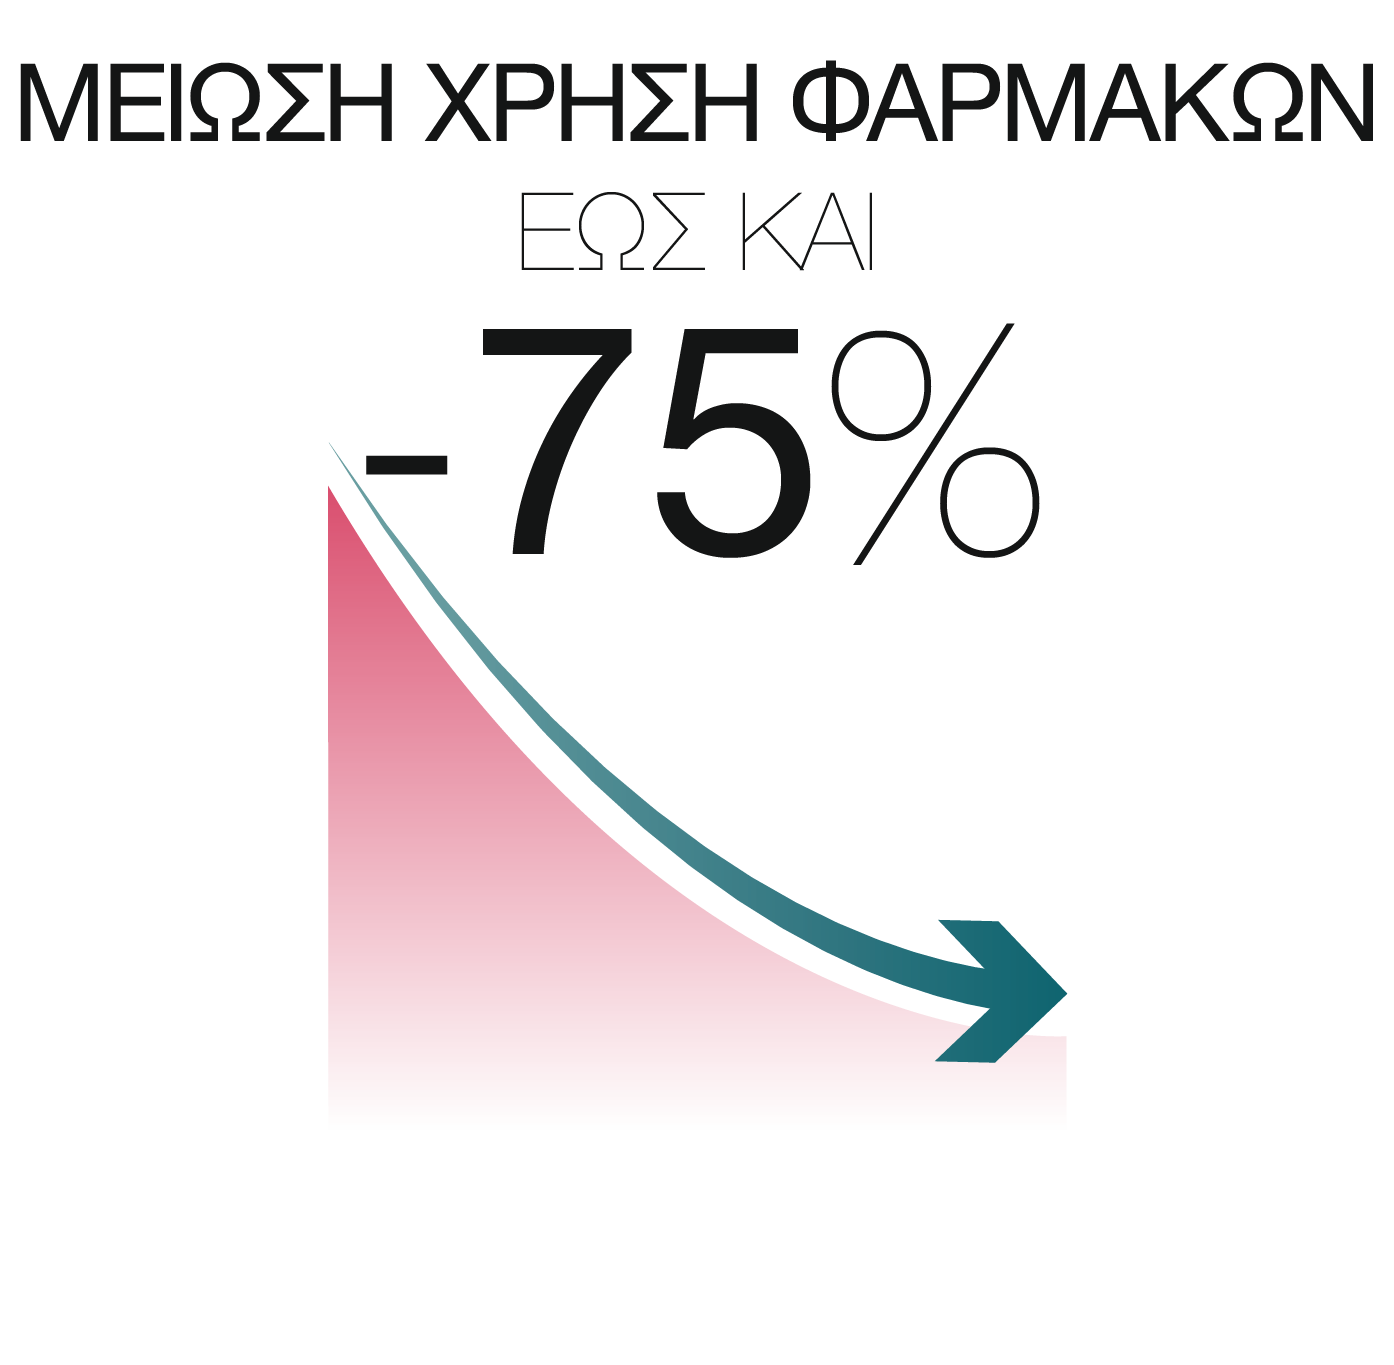 Cefaly : ΧΡΗΣΗ ΦΑΡΜΑΚΩΝ -75%